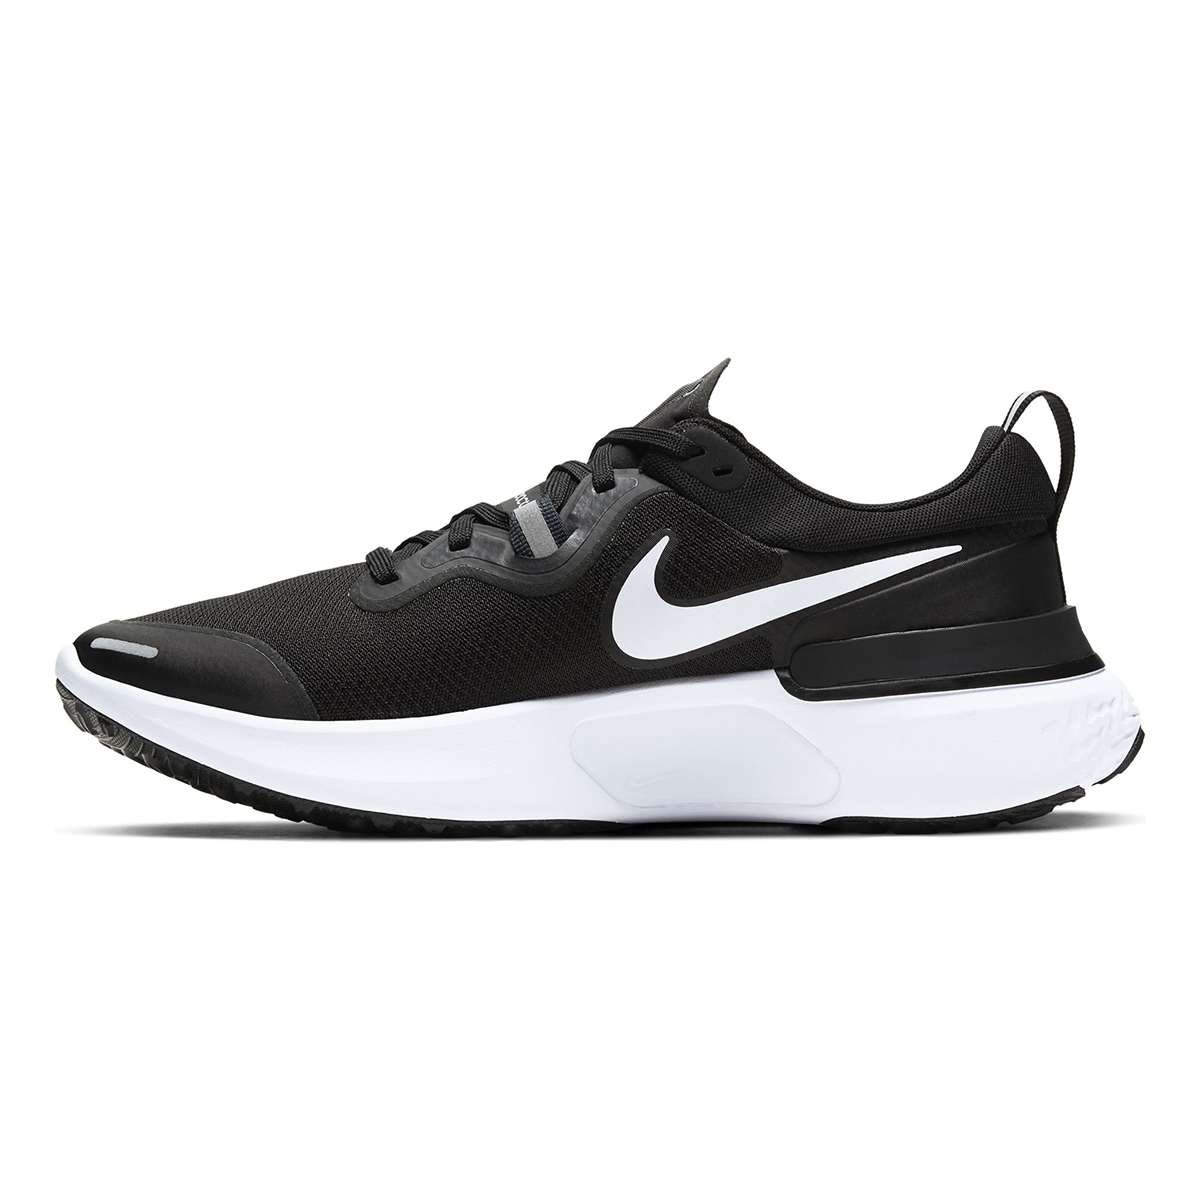 Men's Nike React Miler Running Shoe - Color: Black/Dark Grey/Anthracite/White (Regular Width) - Size: 6, Black/Dark Grey/Anthracite/White, large, image 2